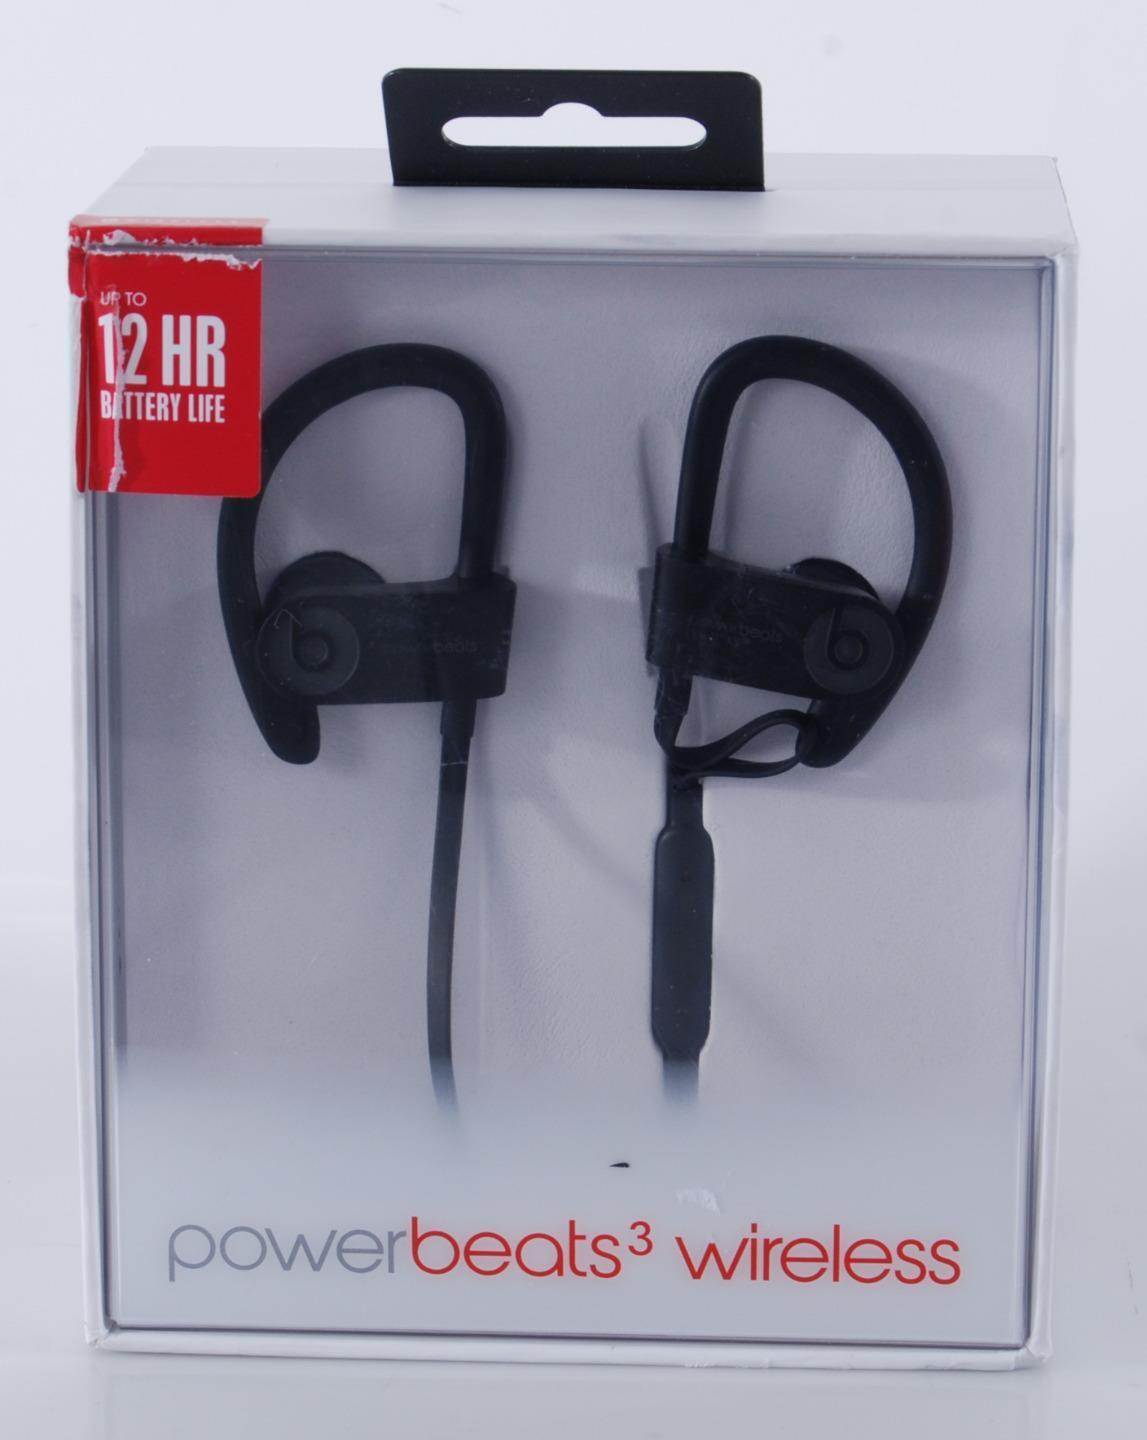 Beats By Dre - Beats by Dr. Dre Powerbeats 3 Bluetooth Earphones Inline Control Noise Isolation